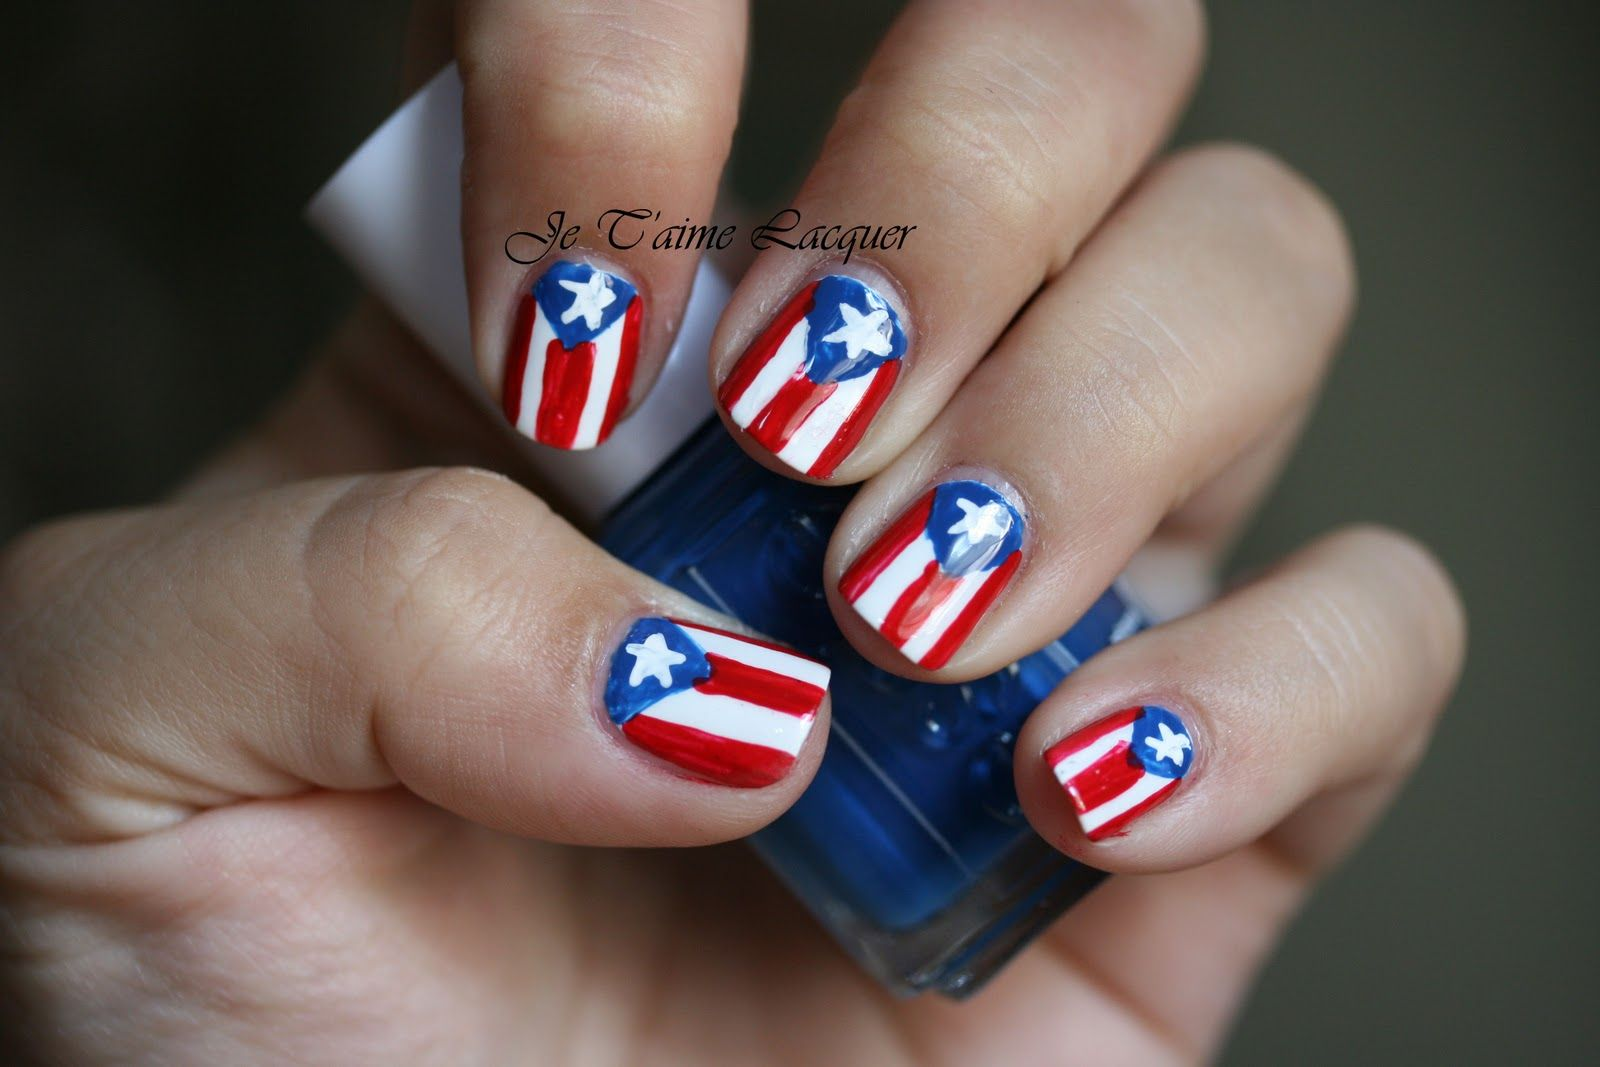 Puerto rico on pinterest puerto rican flag american flag puerto rico on pinterest puerto rican flag american flag biocorpaavc Image collections